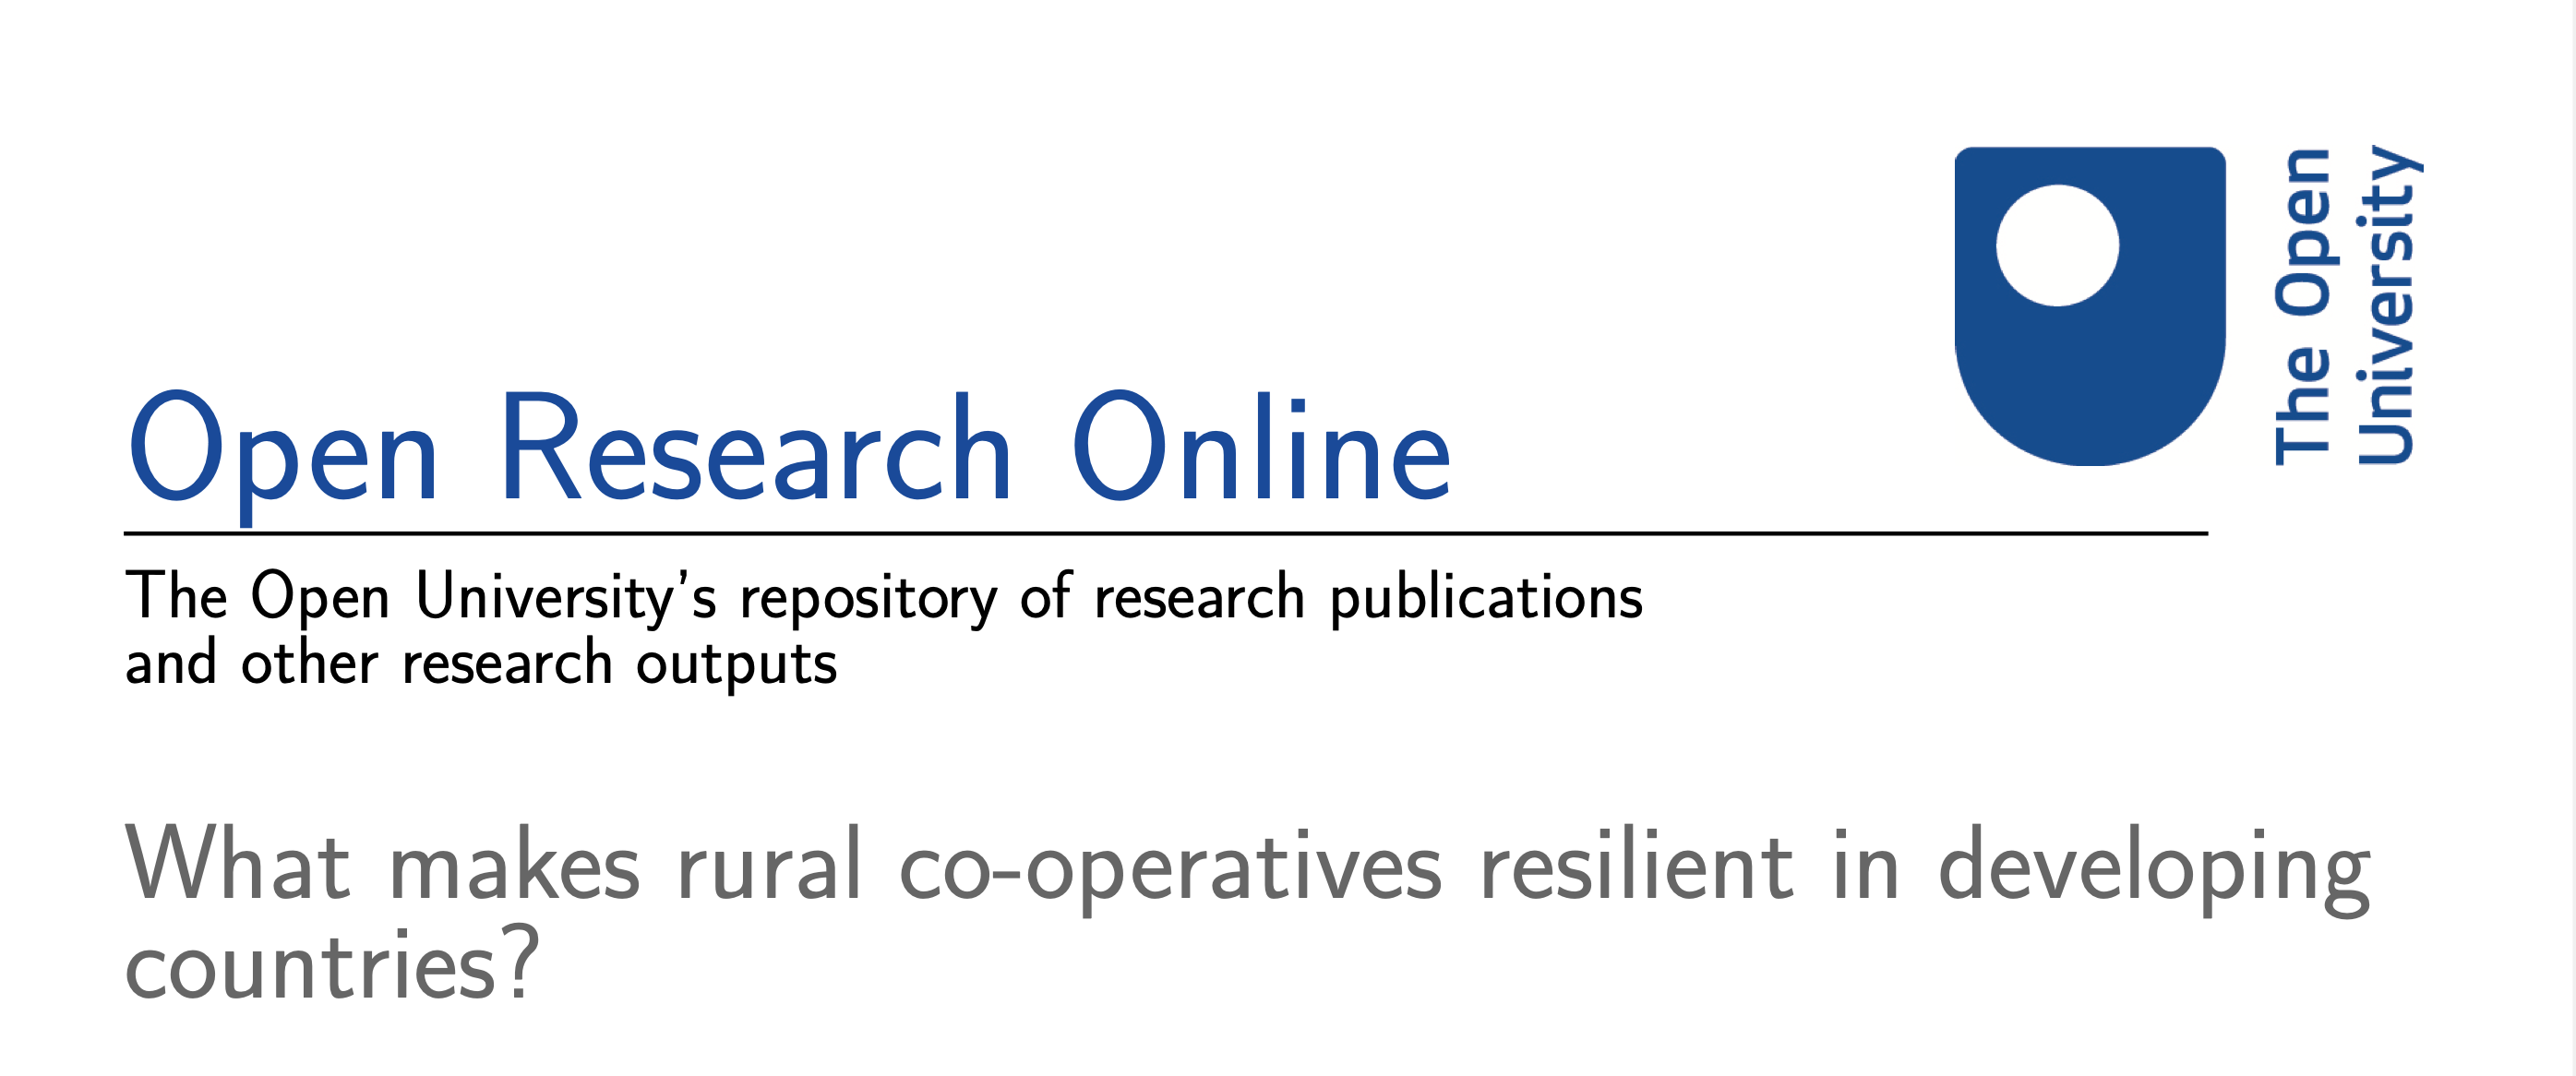 What Makes Rural Co-operatives Resilient in Developing Countries?